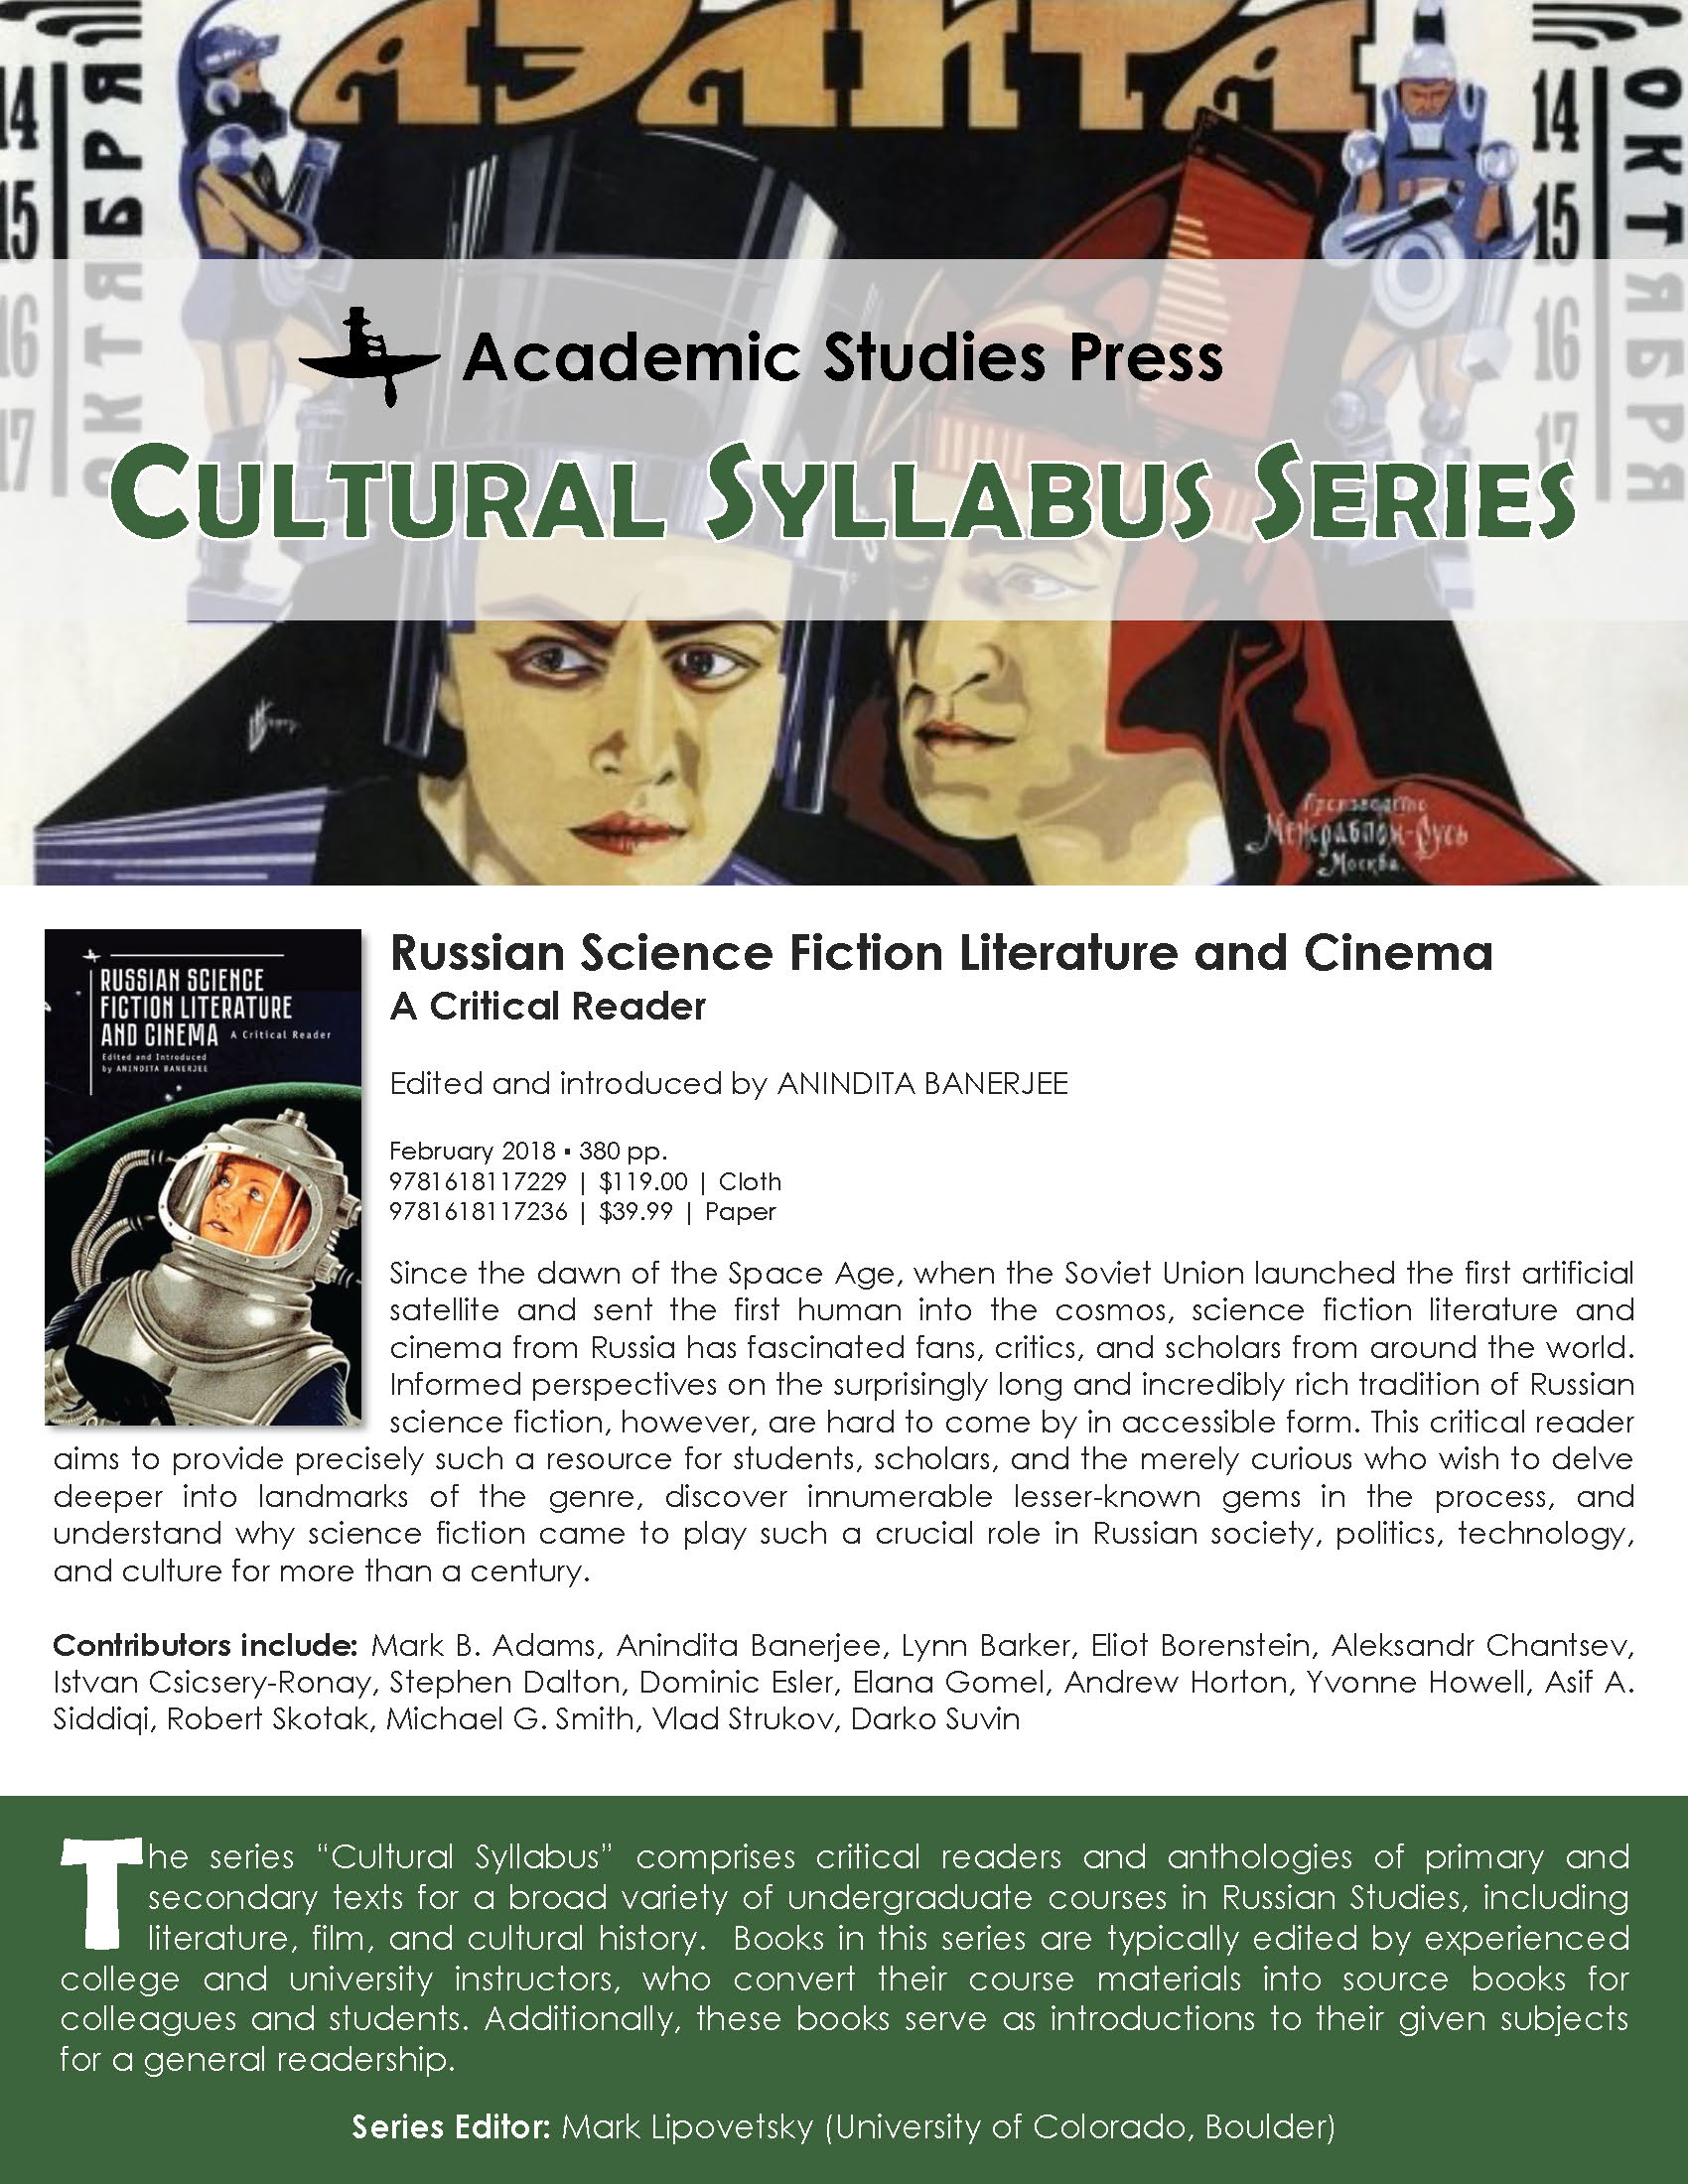 Cultural Syllabus Flyer_Upd_Page_1.jpg